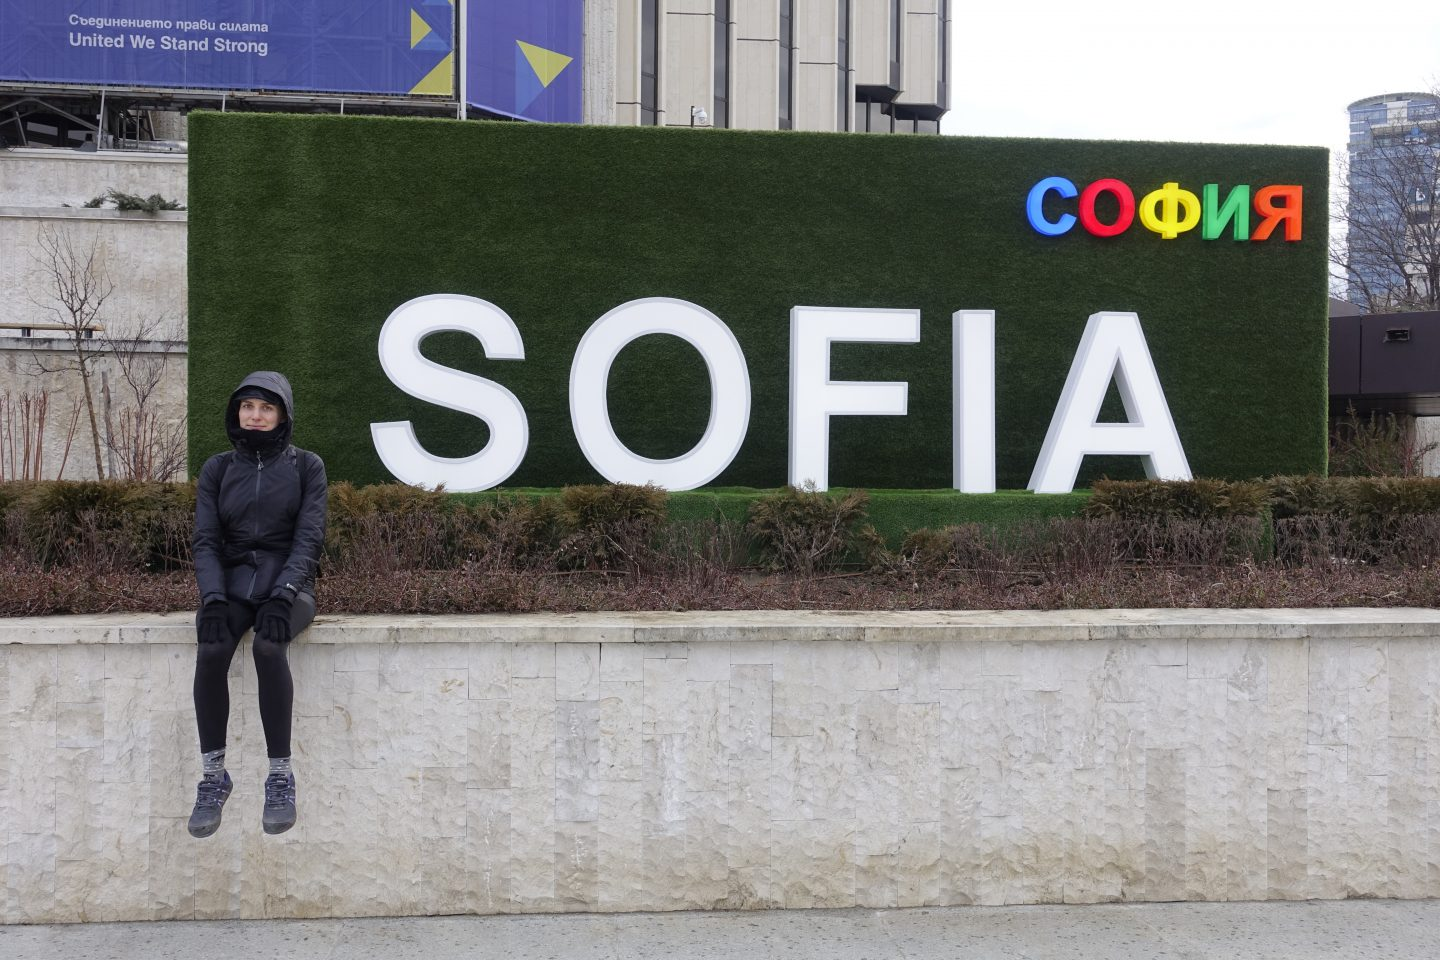 10 Things to do in Sofia